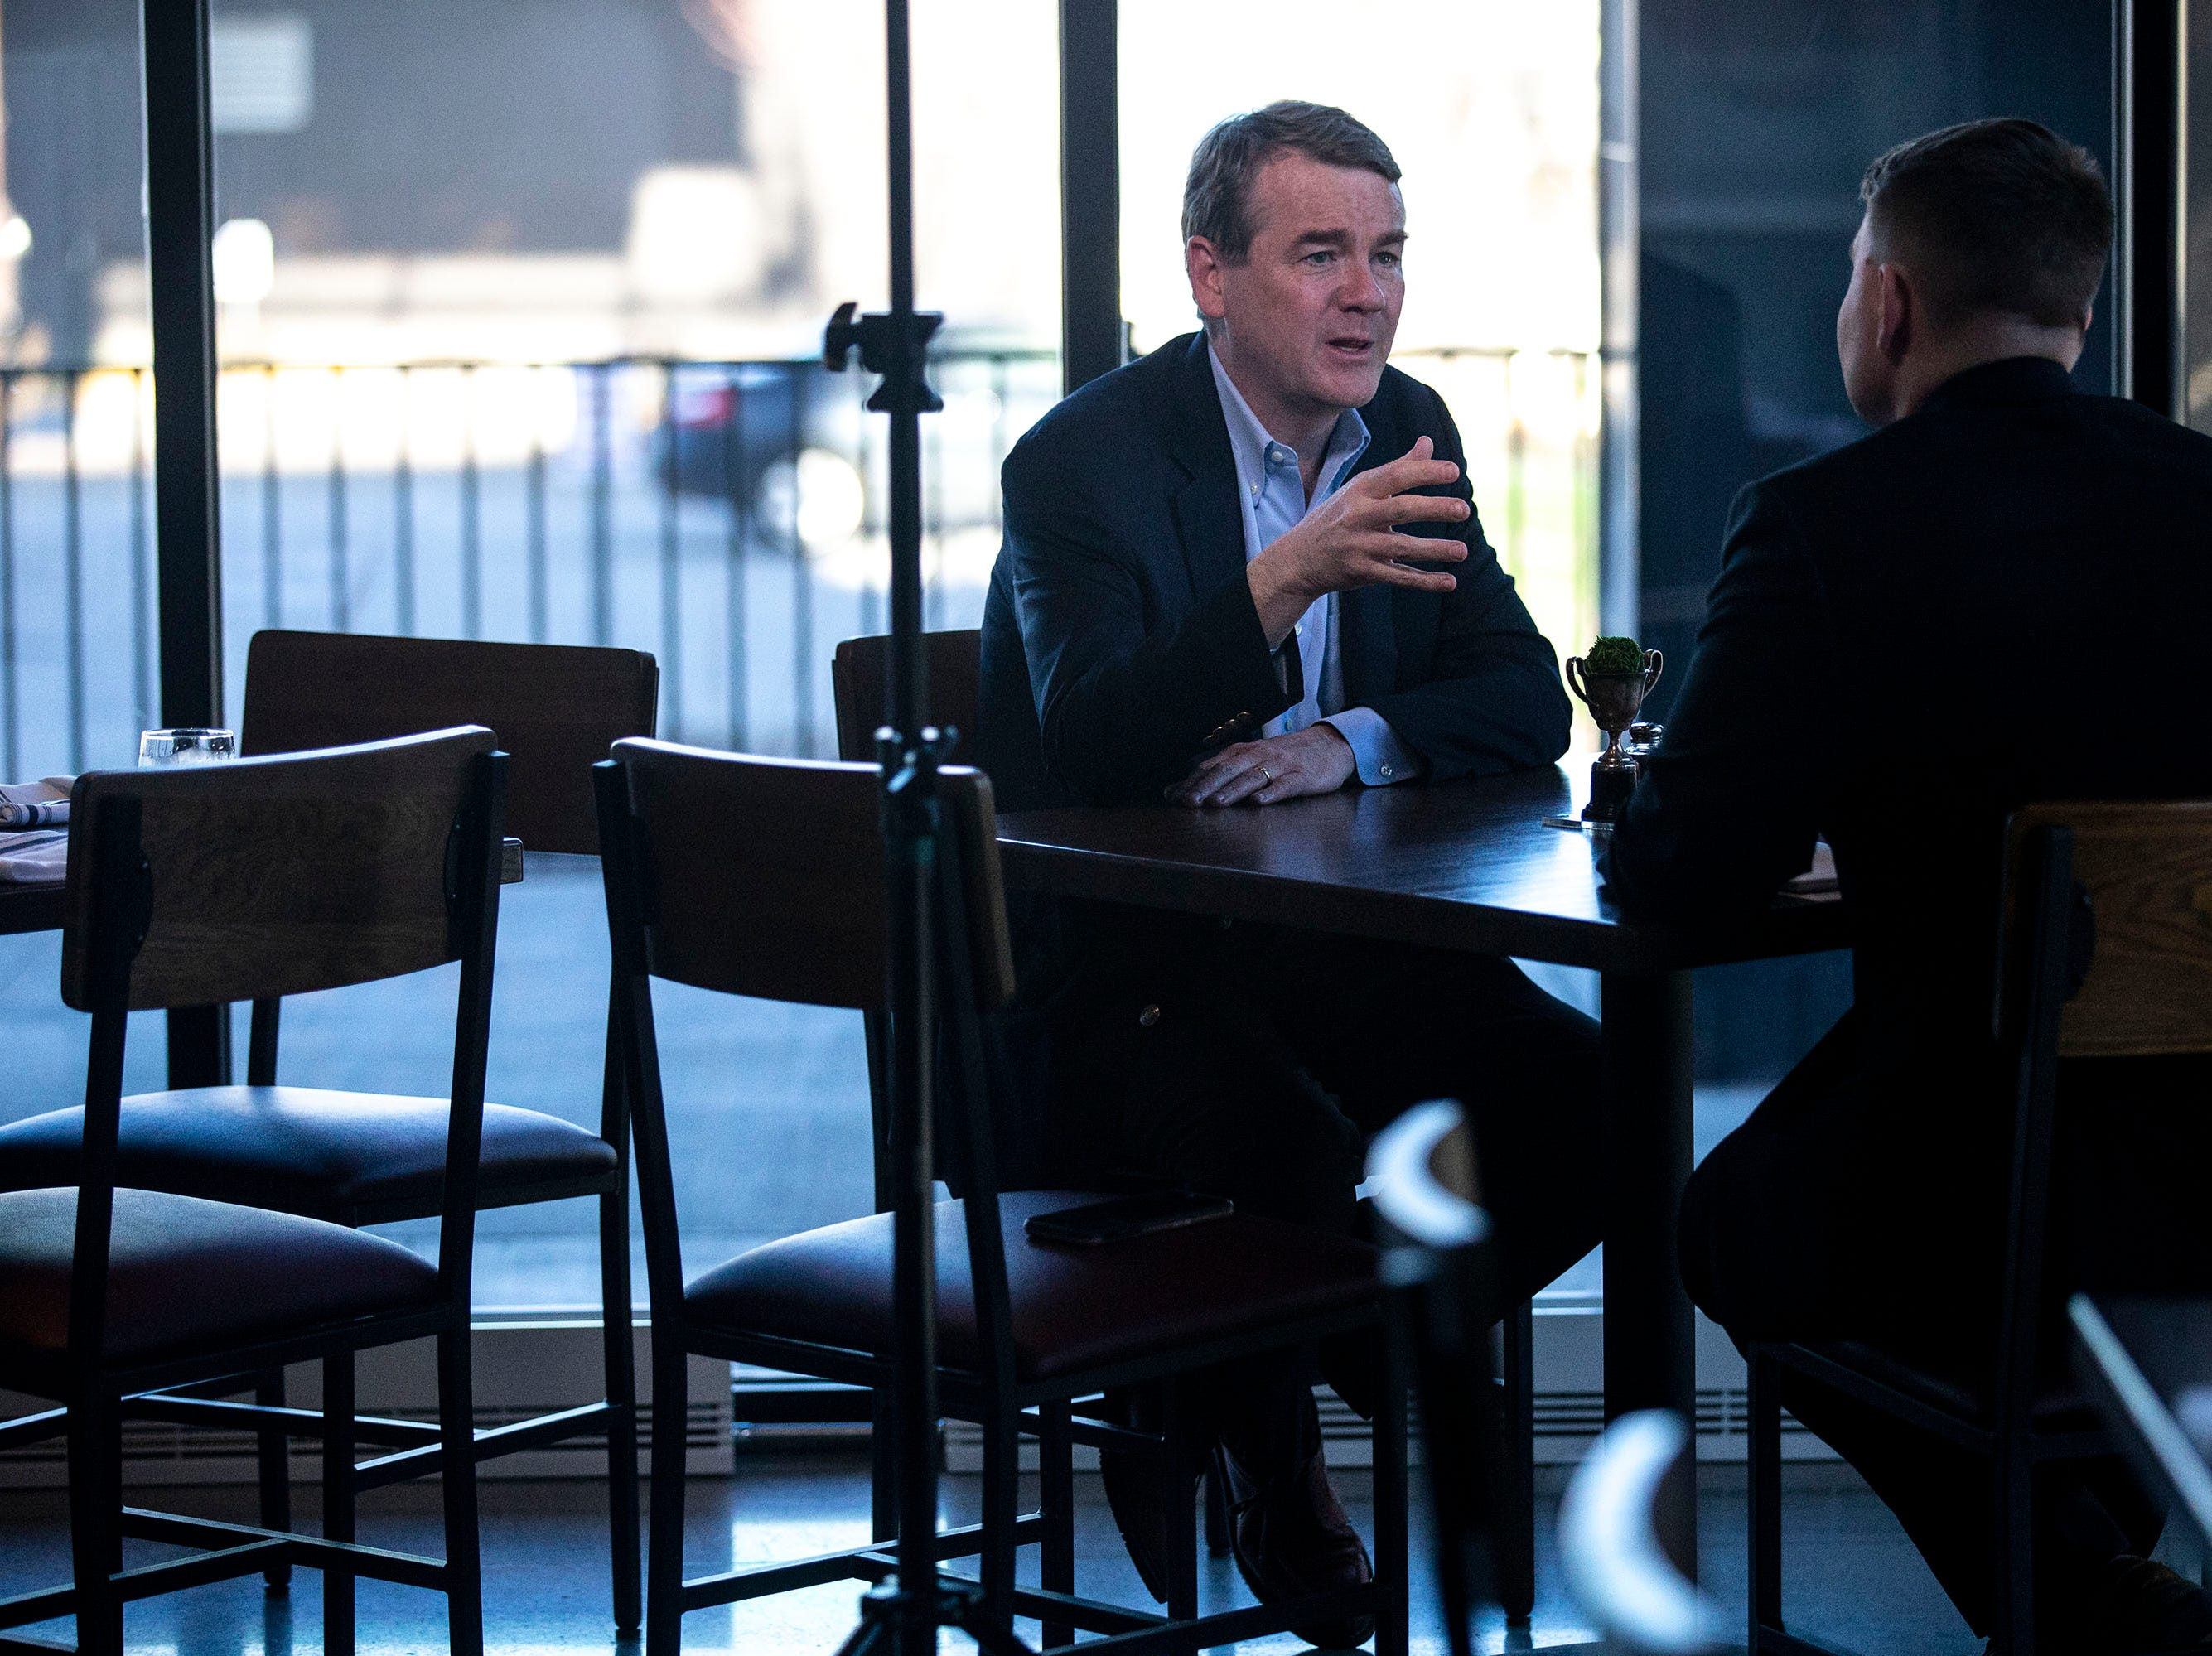 U.S. Sen. Michael Bennet, D-Colo, gives an interview before giving a speech and answering questions on Monday, April 8, 2019, during a meet and greet hosted by the Polk County Democrats at Teddy Maroon's in Des Moines.